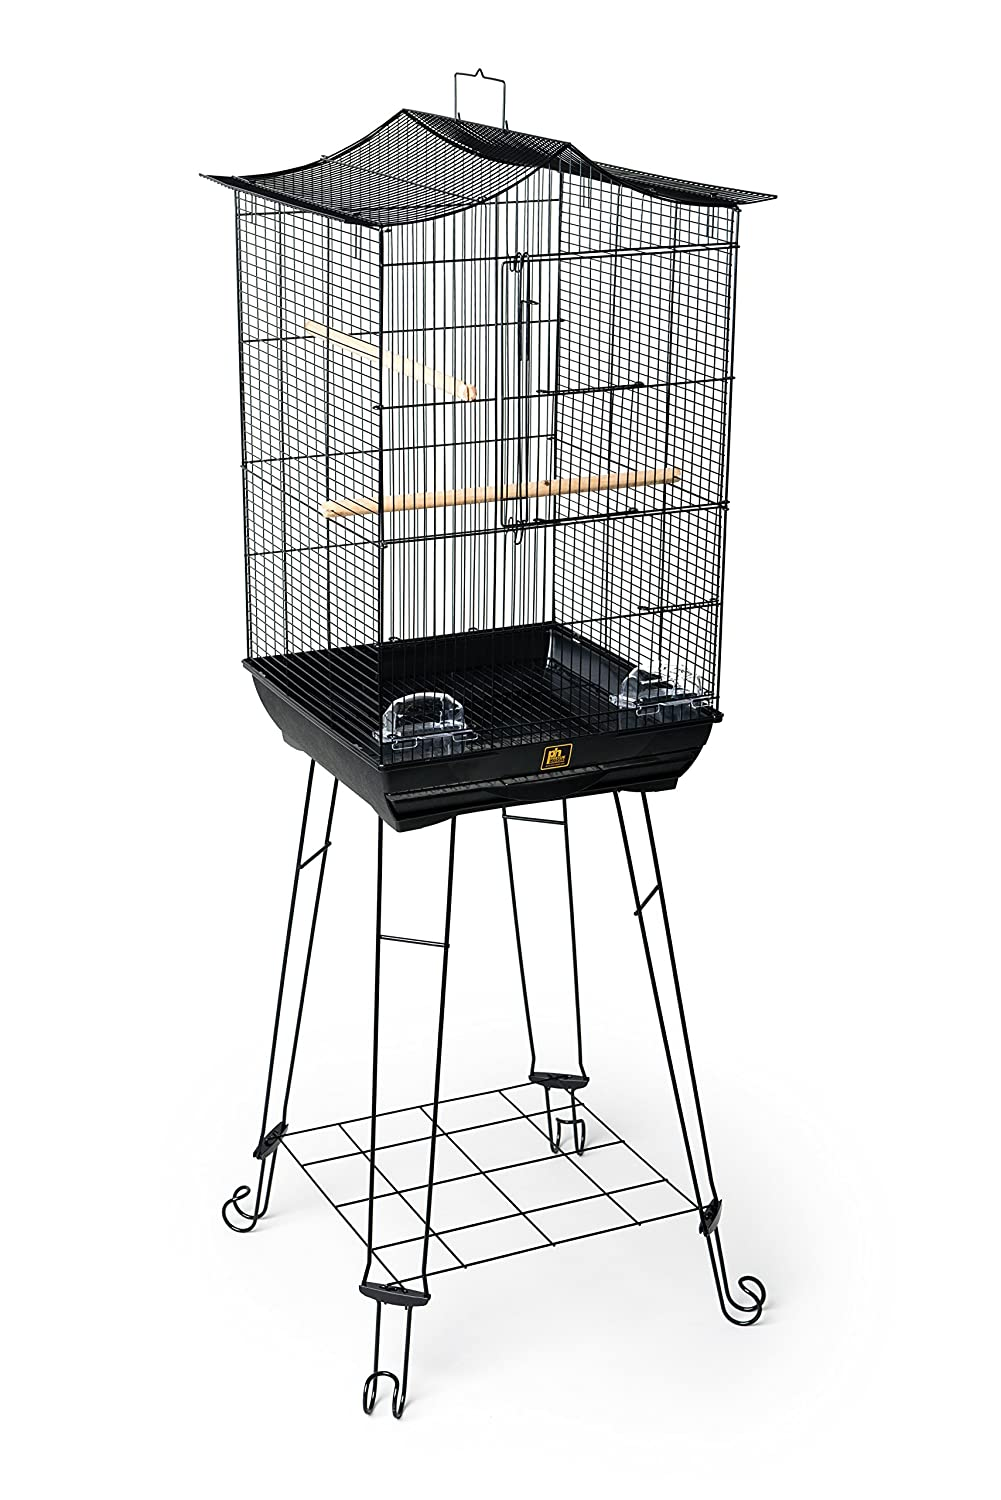 Prevue Pet Products Penthouse Suites Crown Roof Bird Cage with Black Stand Inc. 262